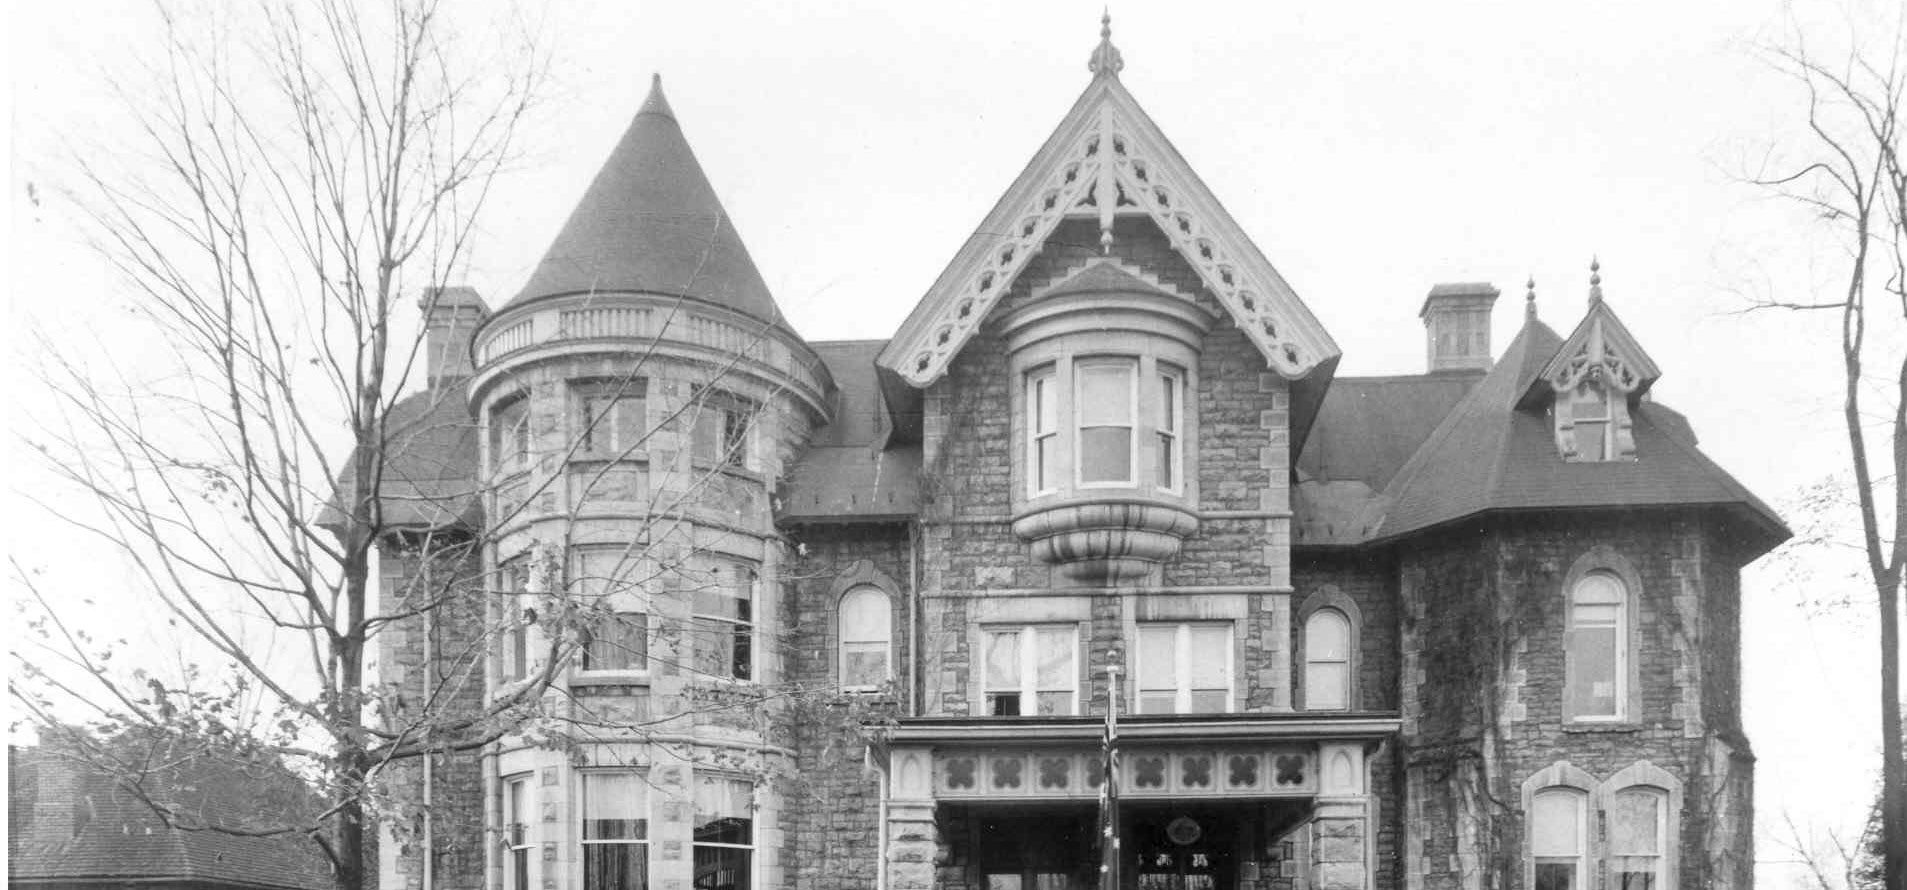 Save the history behind those walls — Deliberating the fate of 24 Sussex